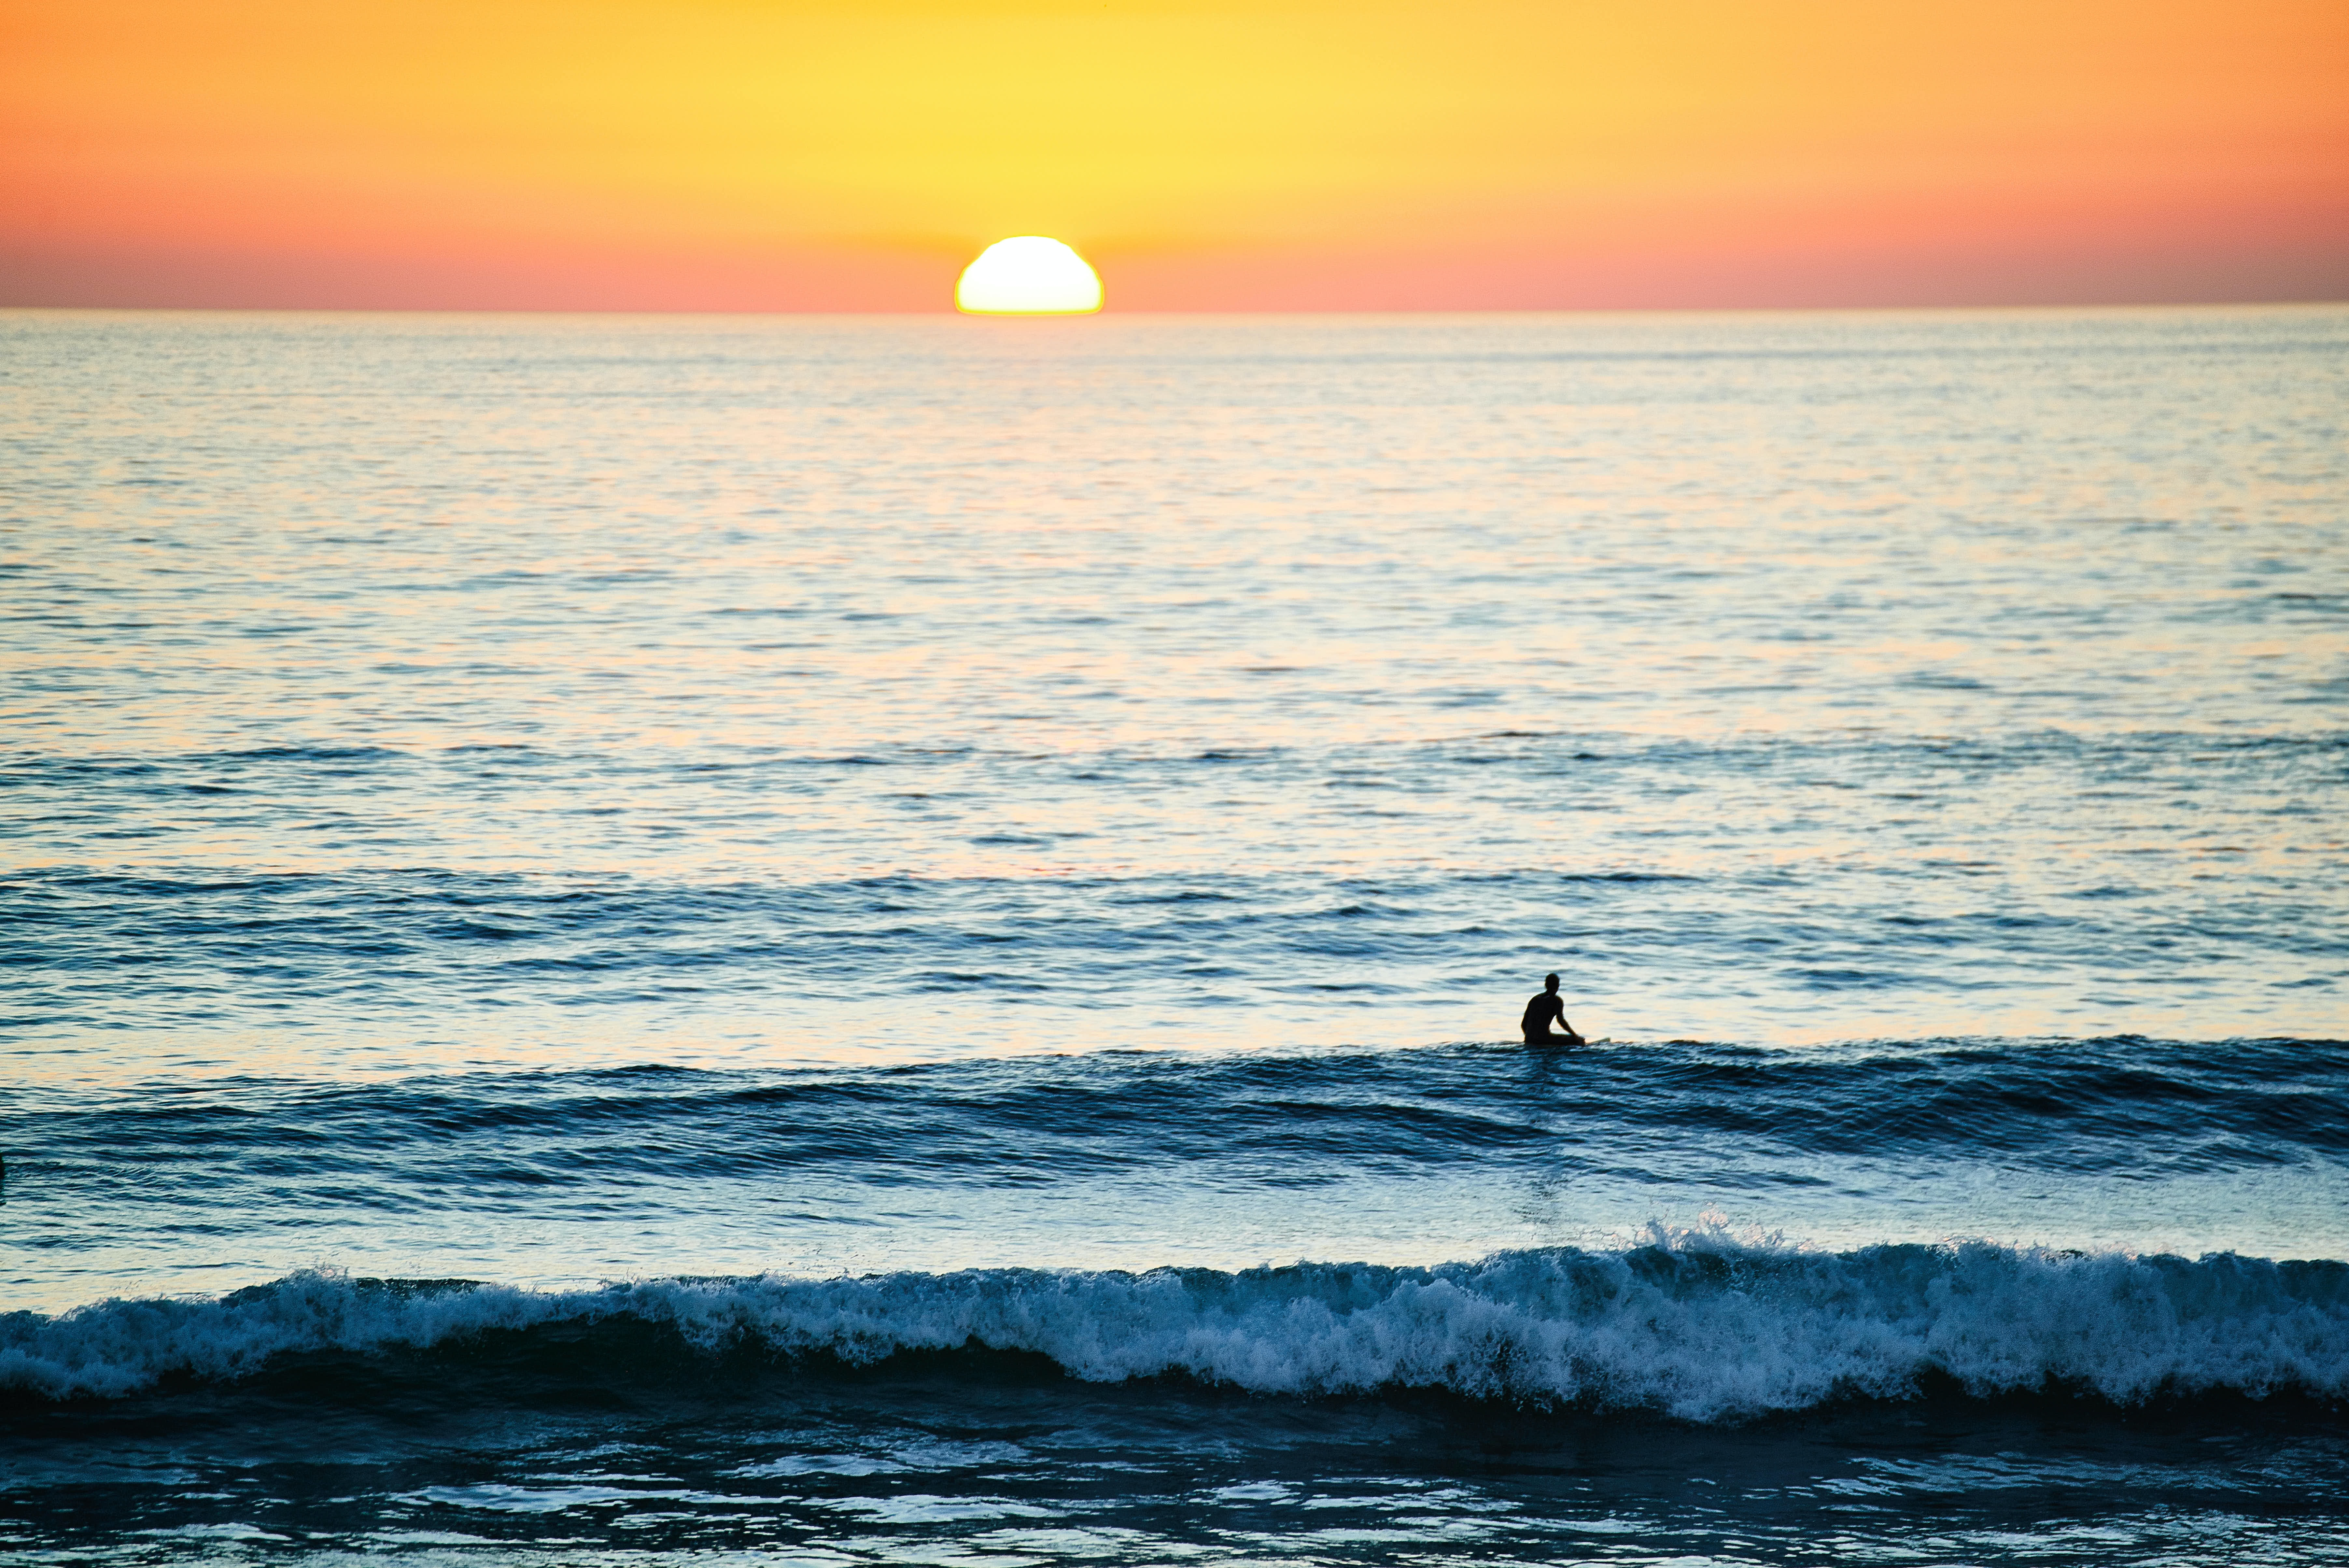 A solitary surfer in the waves at Hossegor, as the sun sets on the horizon leaving an orange sky